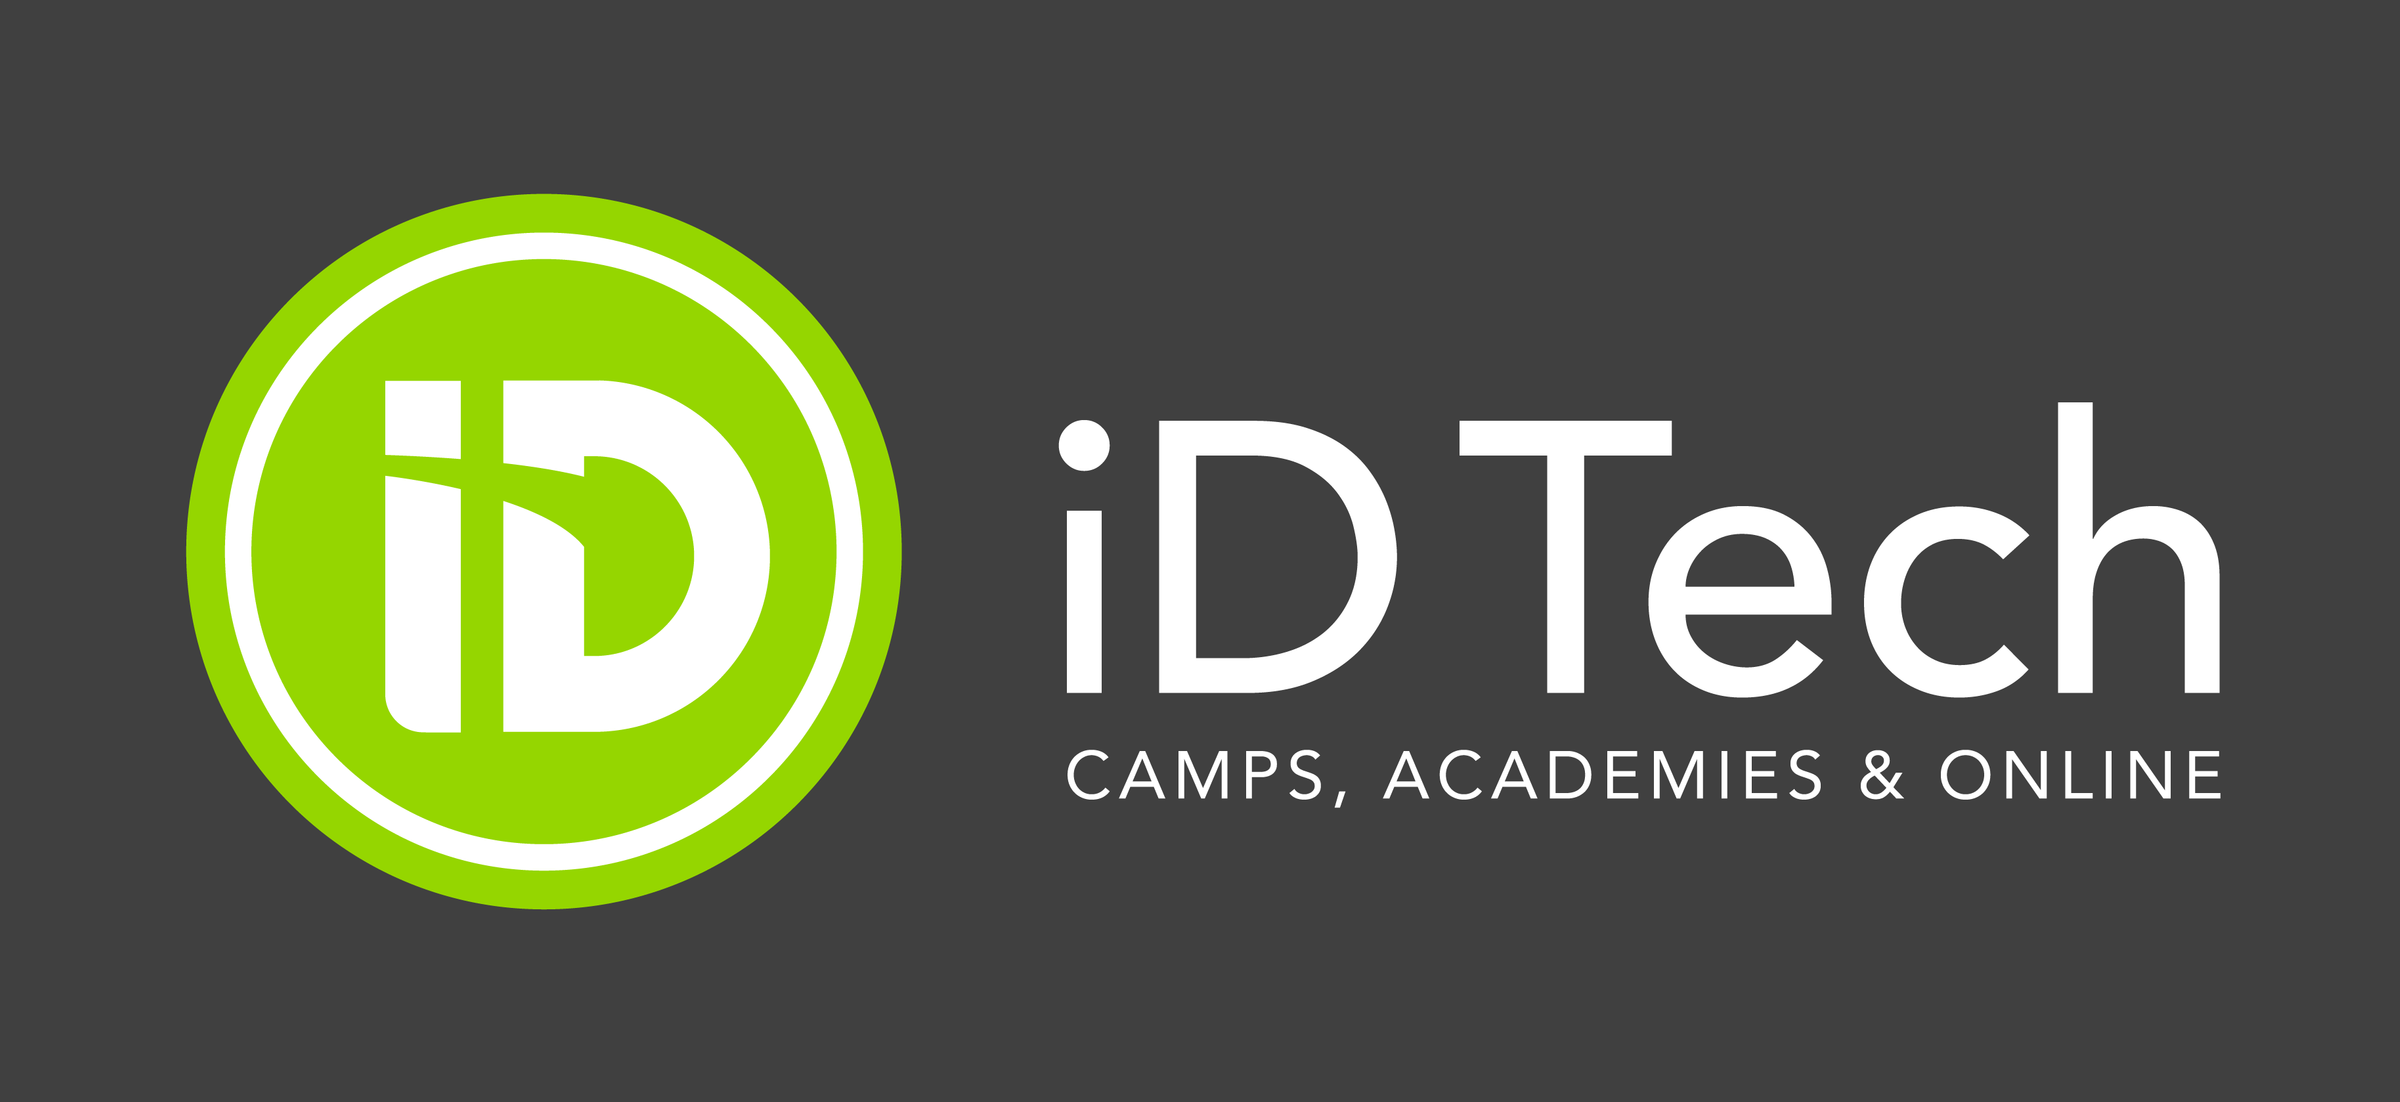 iD Tech Camps: #1 in STEM Education - Held at University of South Florida